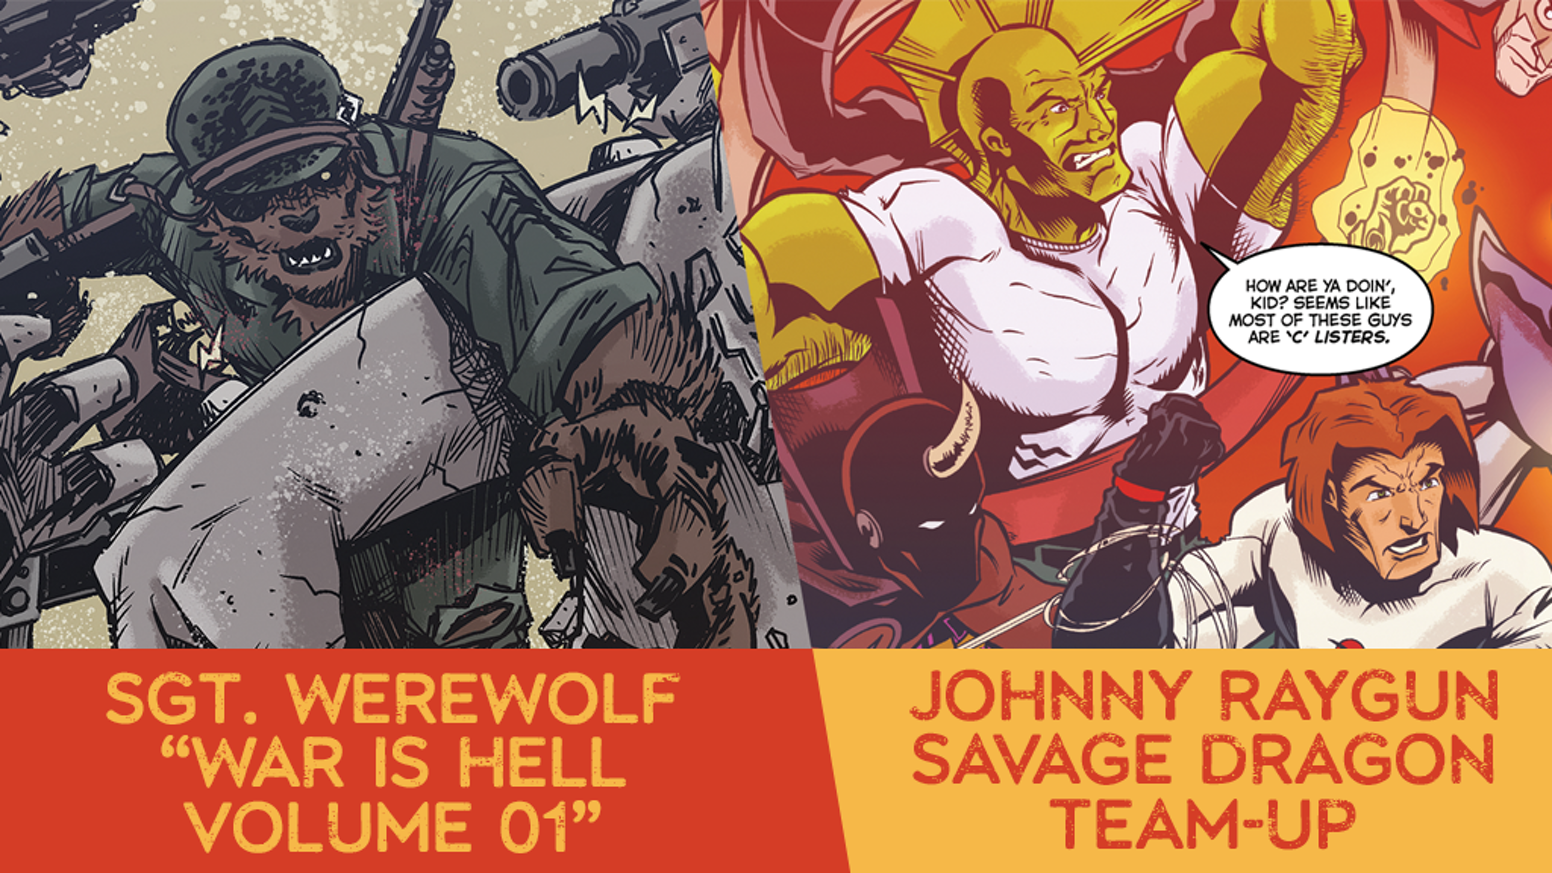 Back one or both comics! Featuring a Johnny Raygun and Savage Dragon team-up, and the other with creepy WWII Horror: Sgt. Werewolf